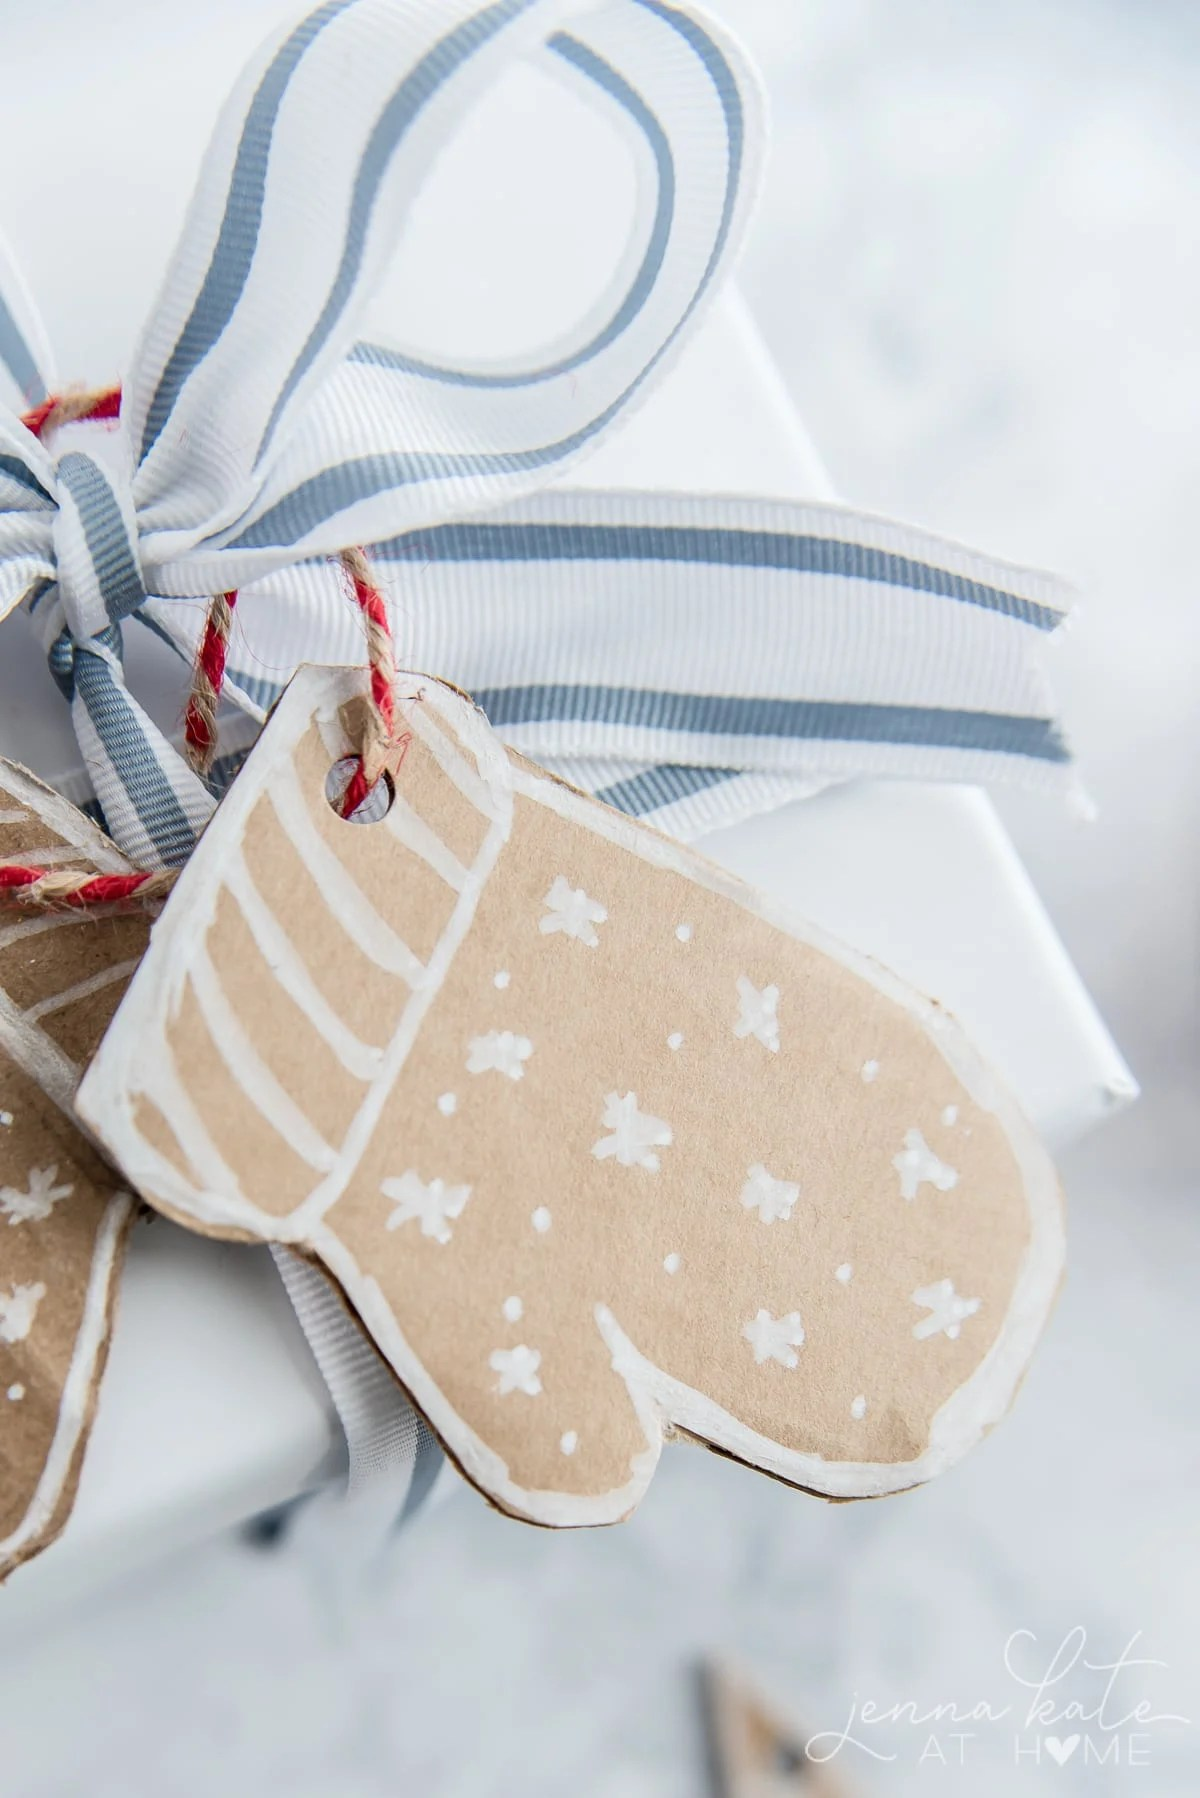 Cardboard mitten gift tag with white marker decorations